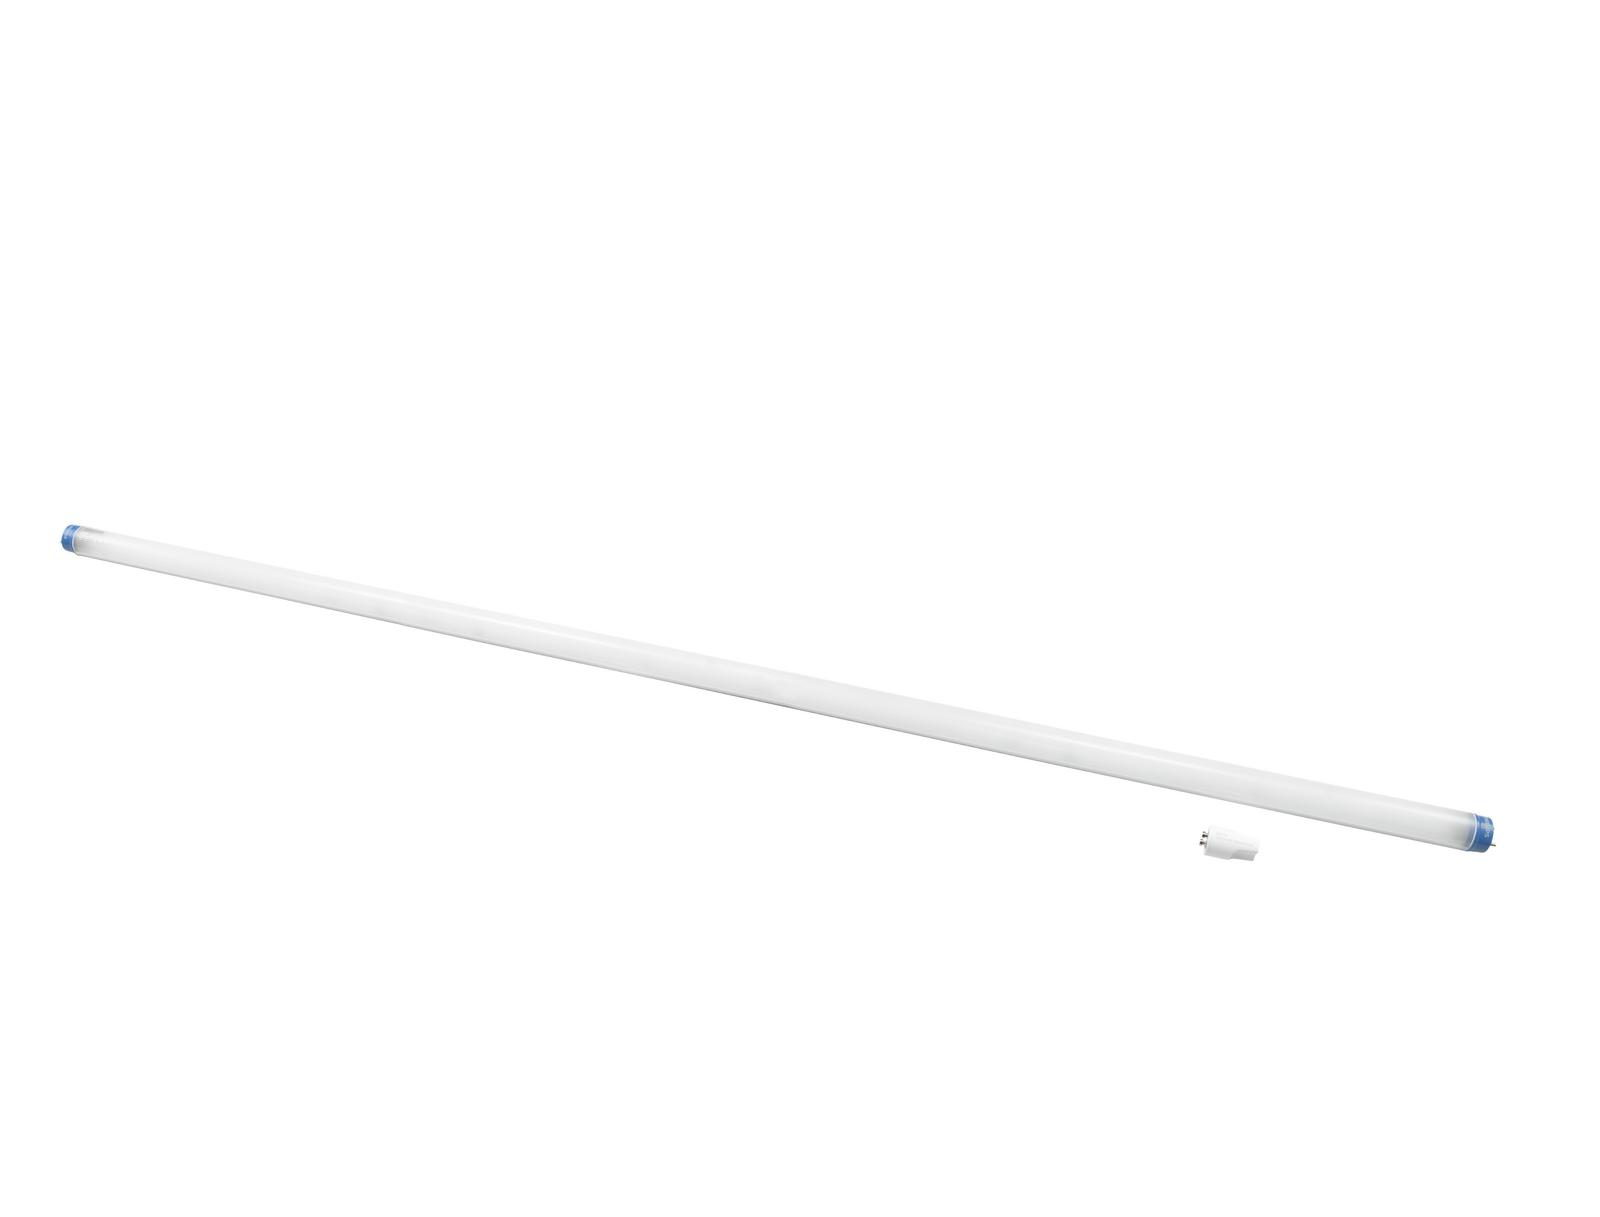 PHILIPS LED tubo G-13 24W 4000K 1500mm